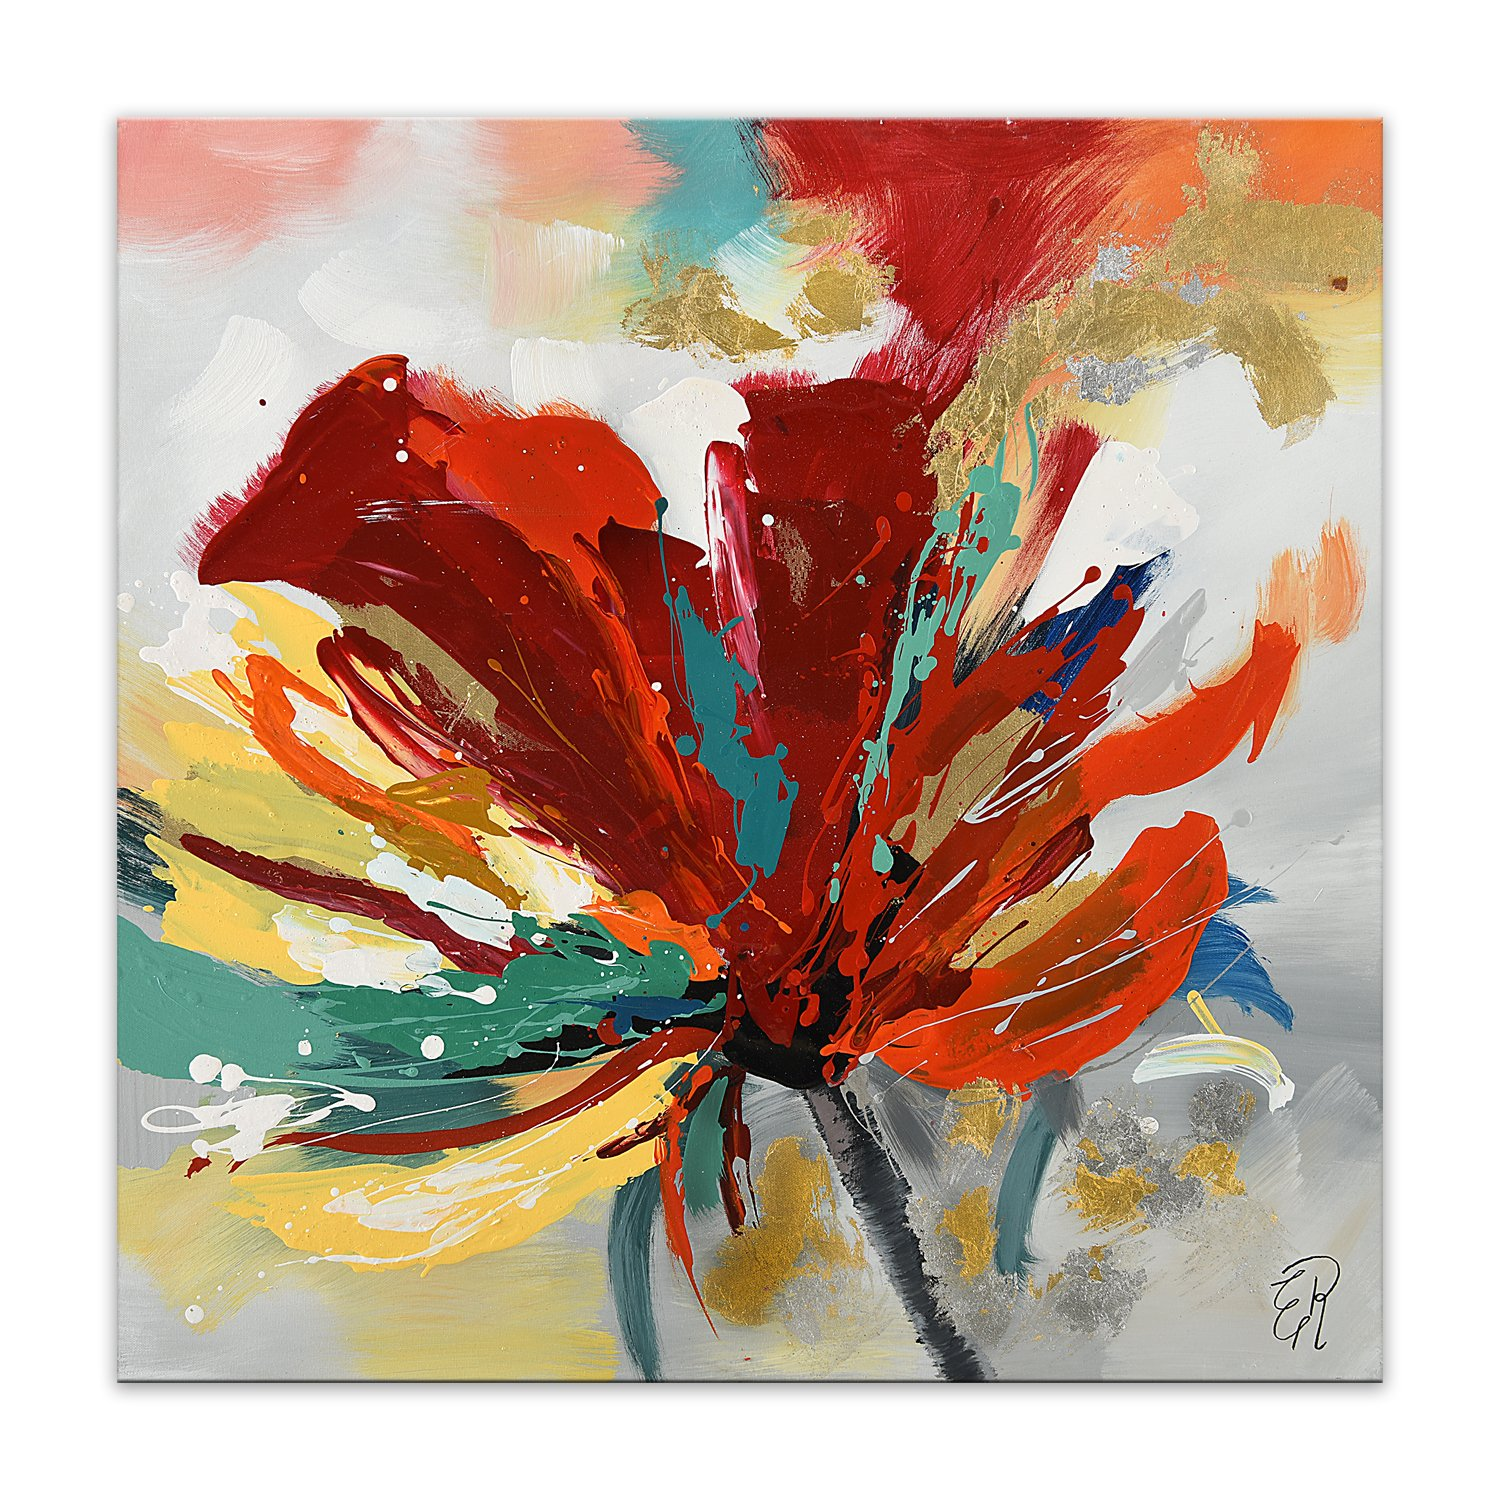 World Art TW60123 Aesthetic Wooden Frame Multicolored Flower 80x80x3.5 cm Size: 32 x 32 x 2 Inch